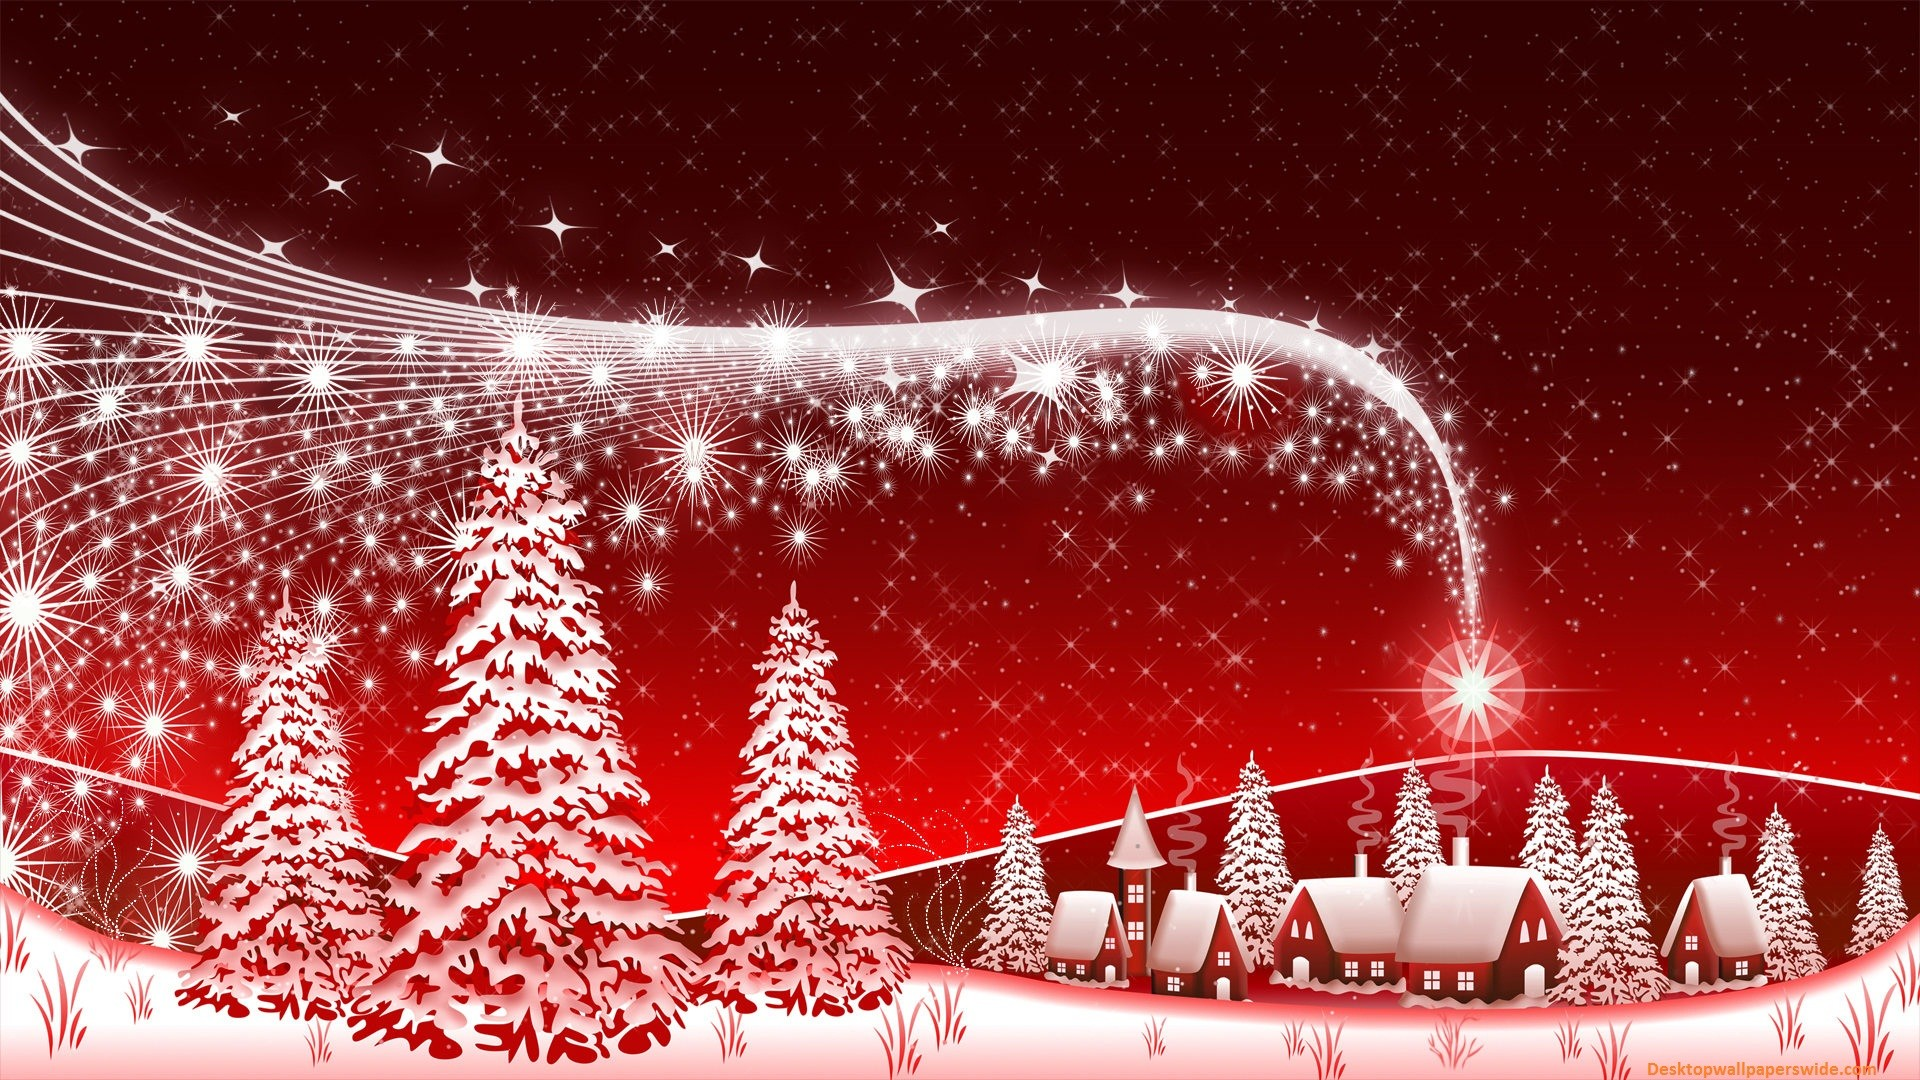 Download Merry Christmas Wallpaper Computer Full Size